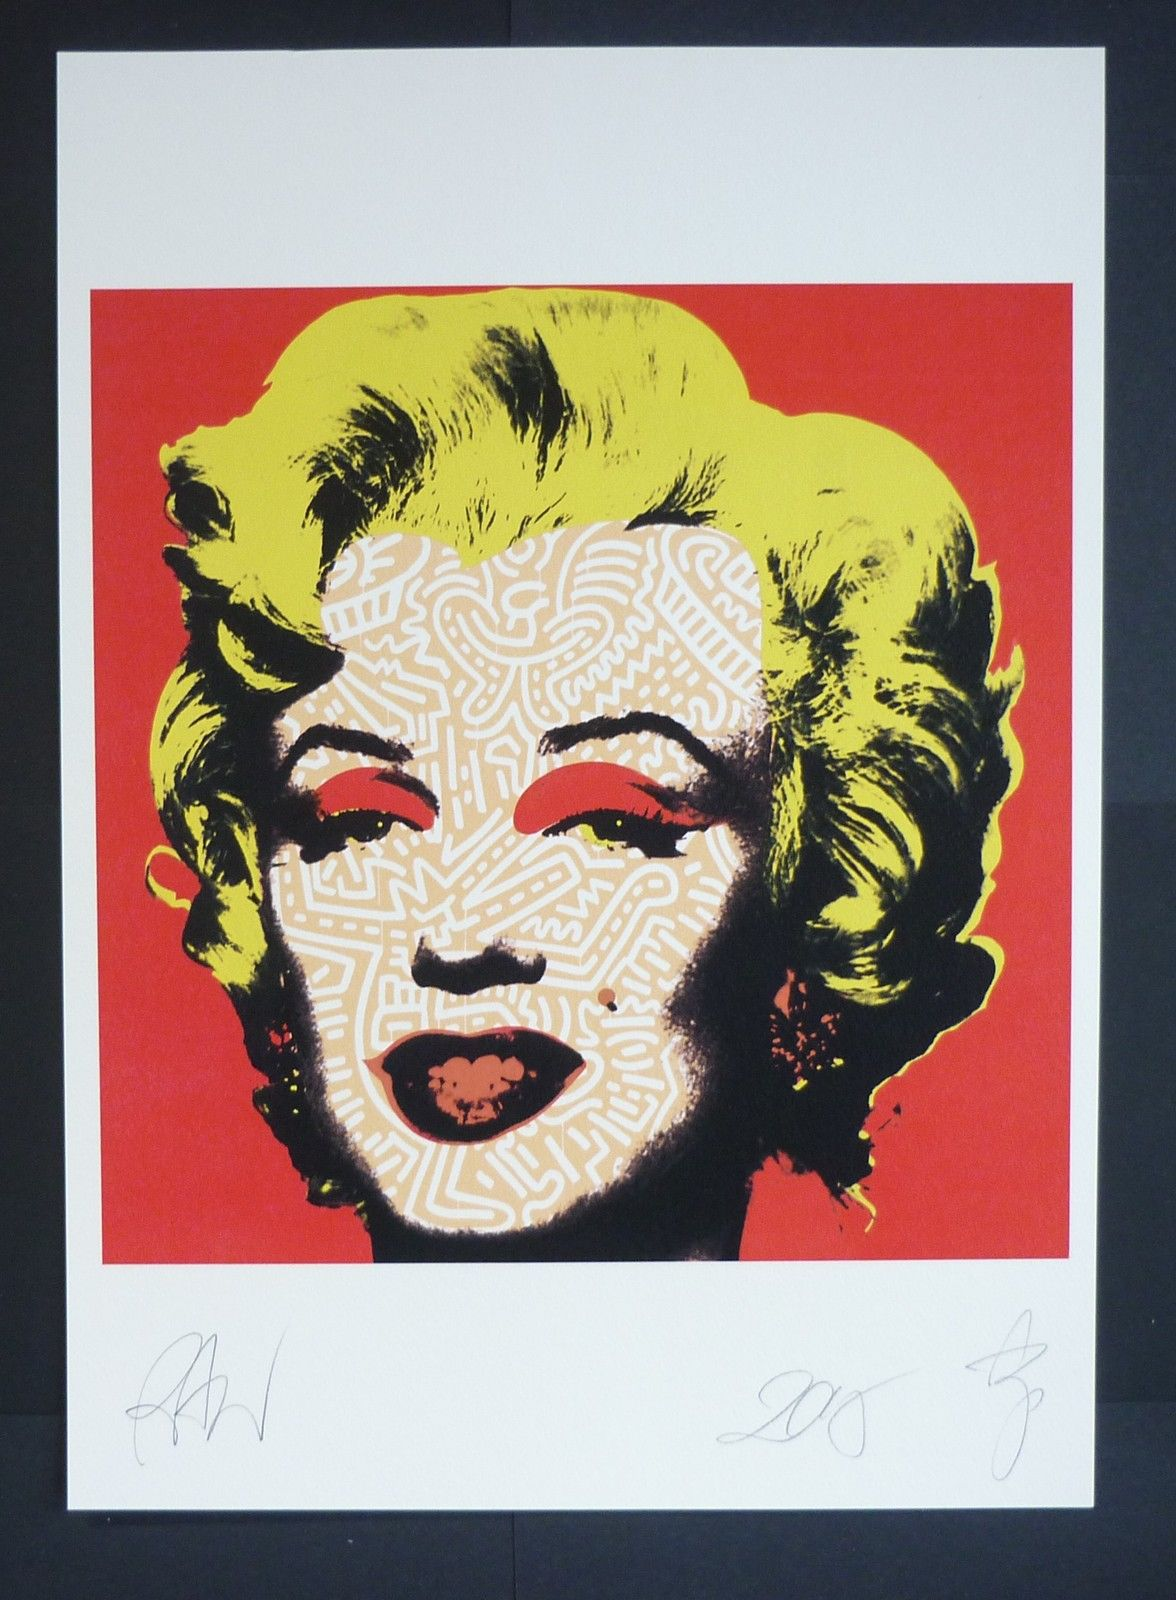 RAW, urban art gallery buy street art screenprint poster